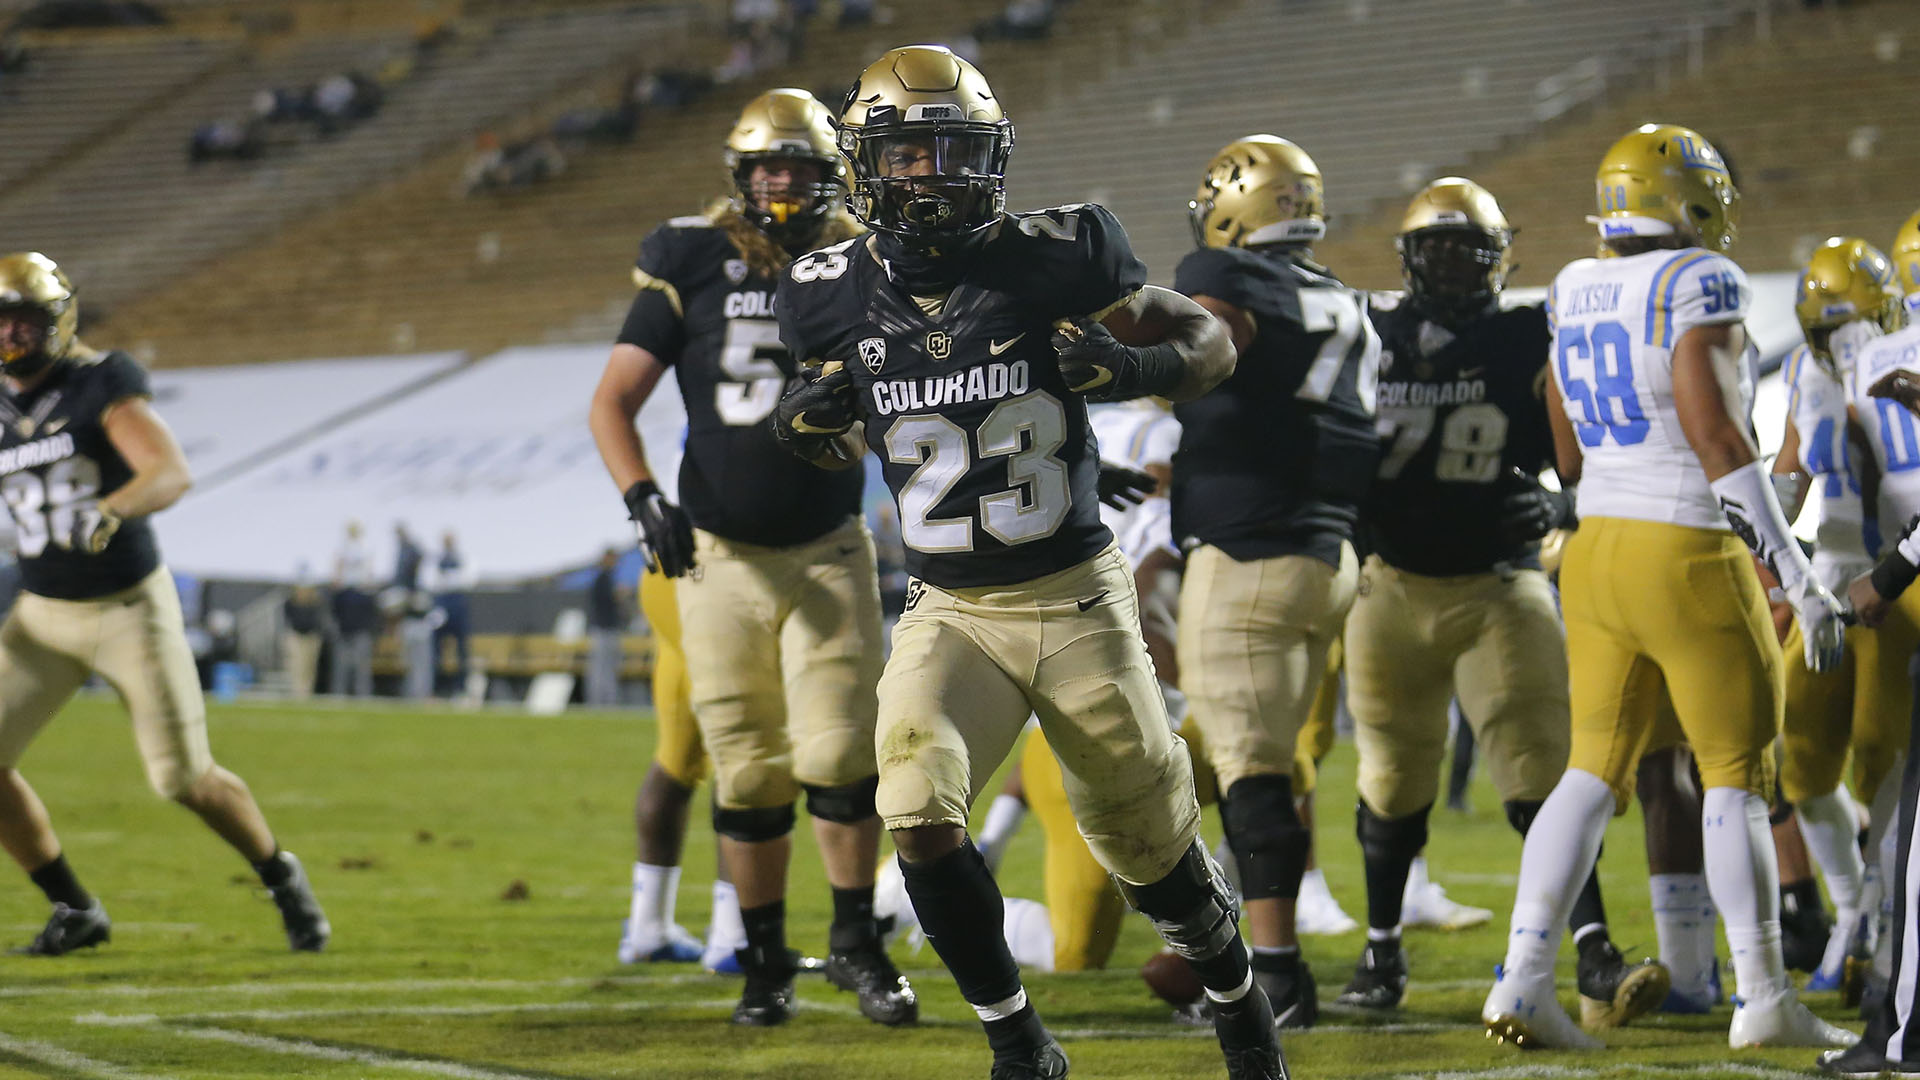 CU Game Review